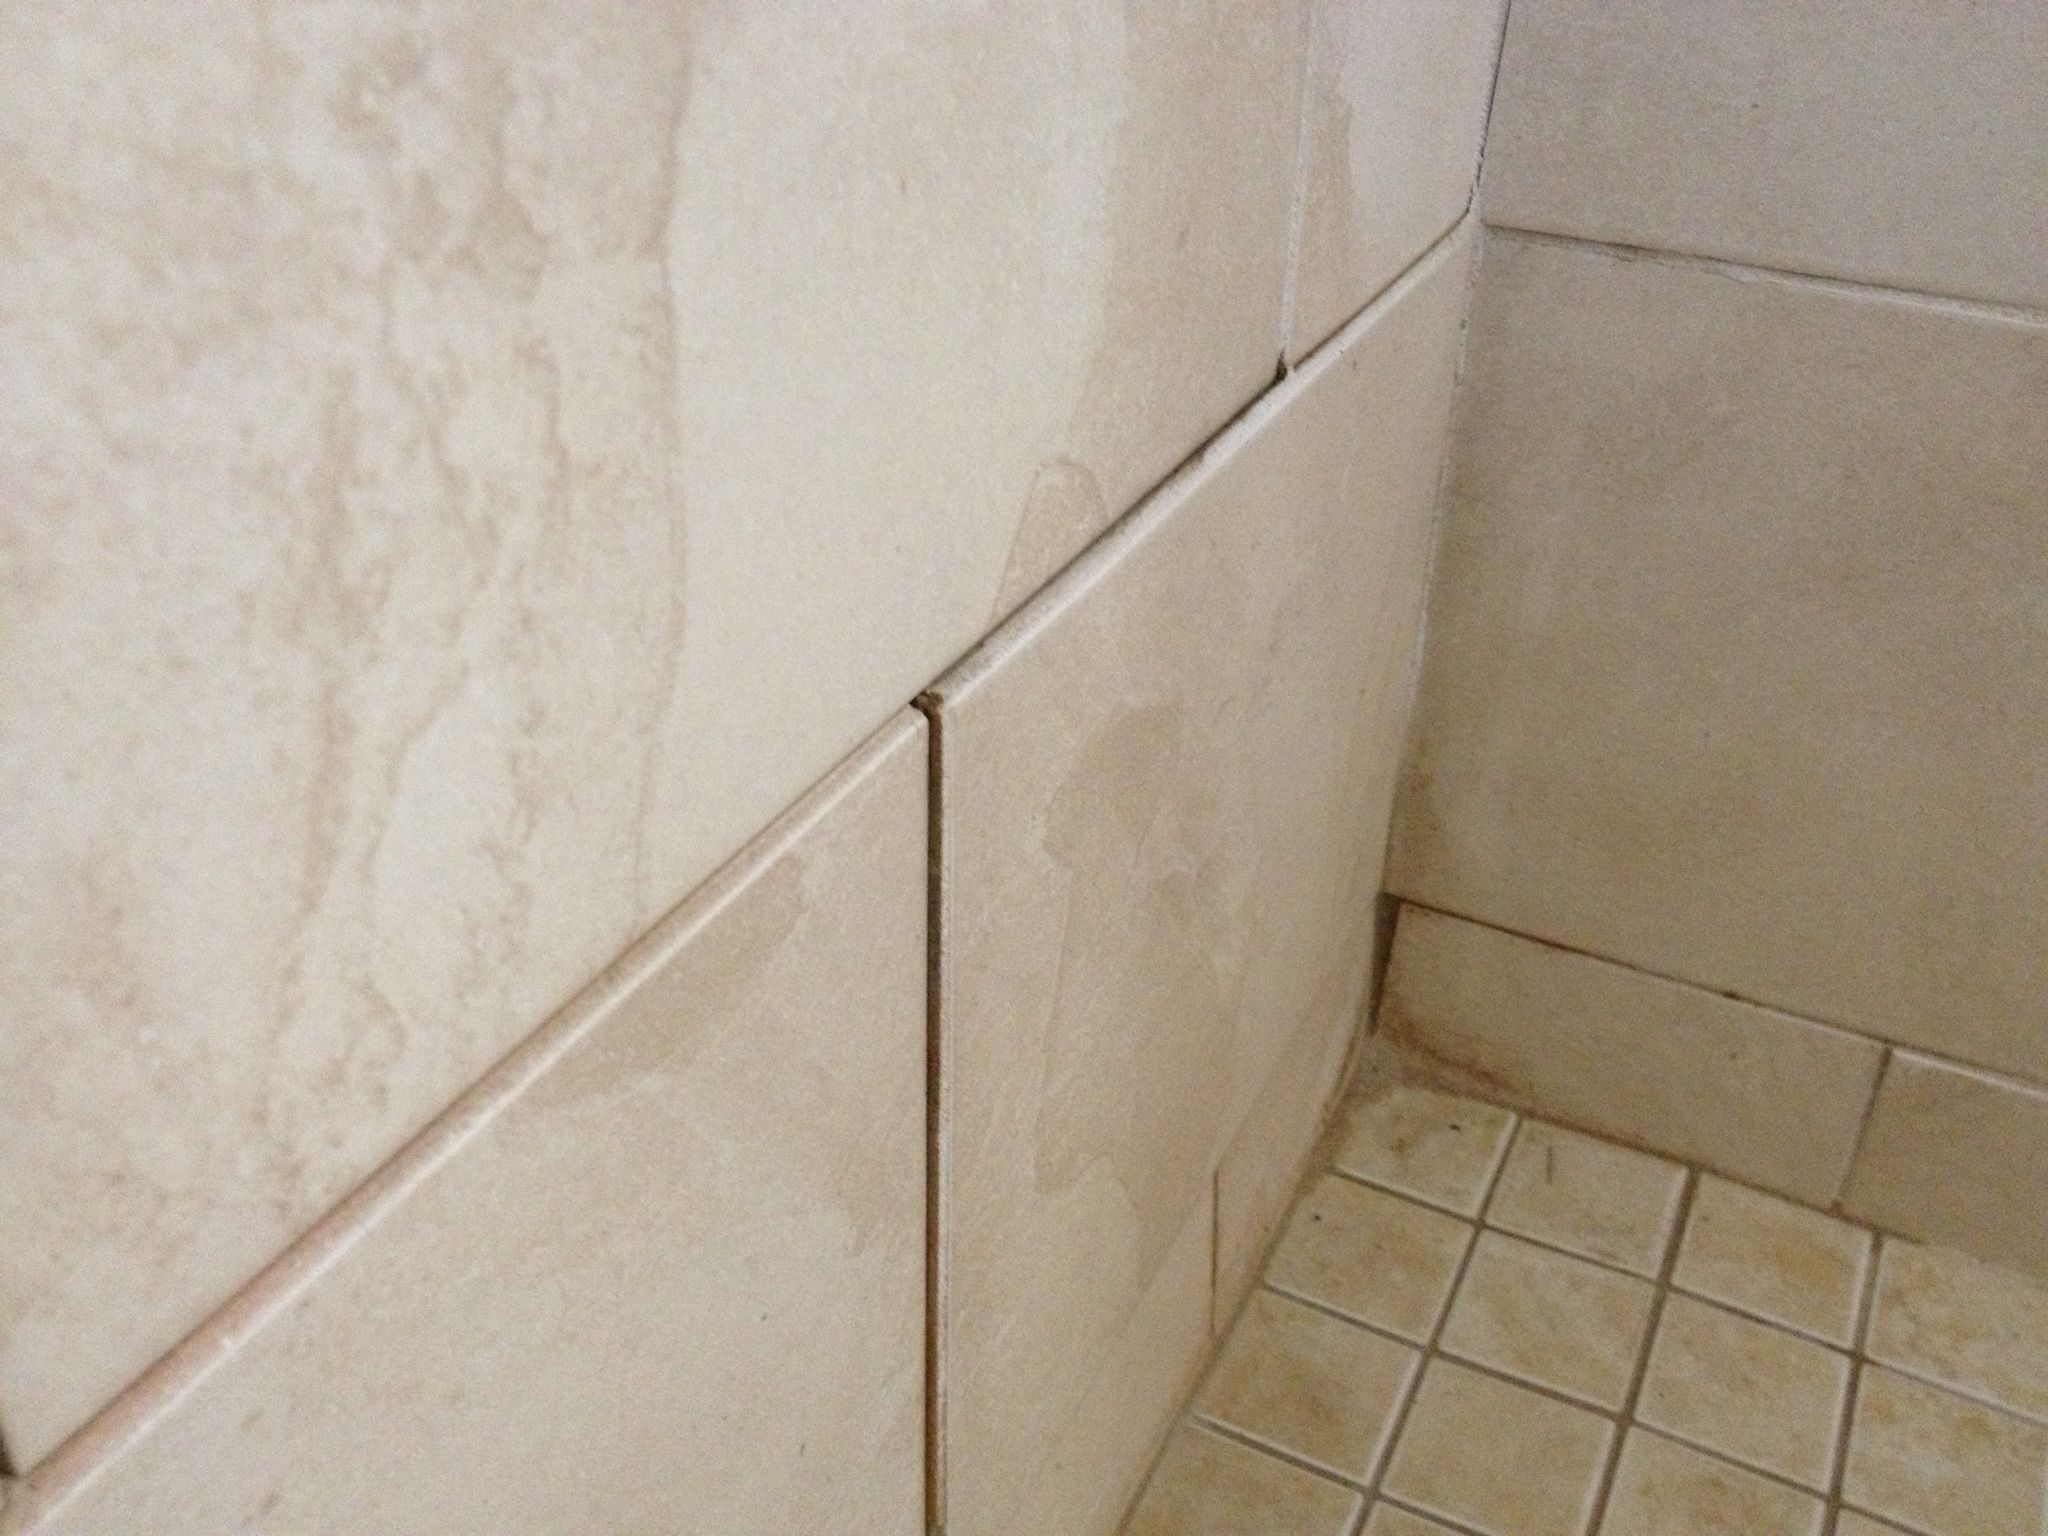 How To Repair A Loose Shower Tile Tile Repair Shower Tile Loose Tile